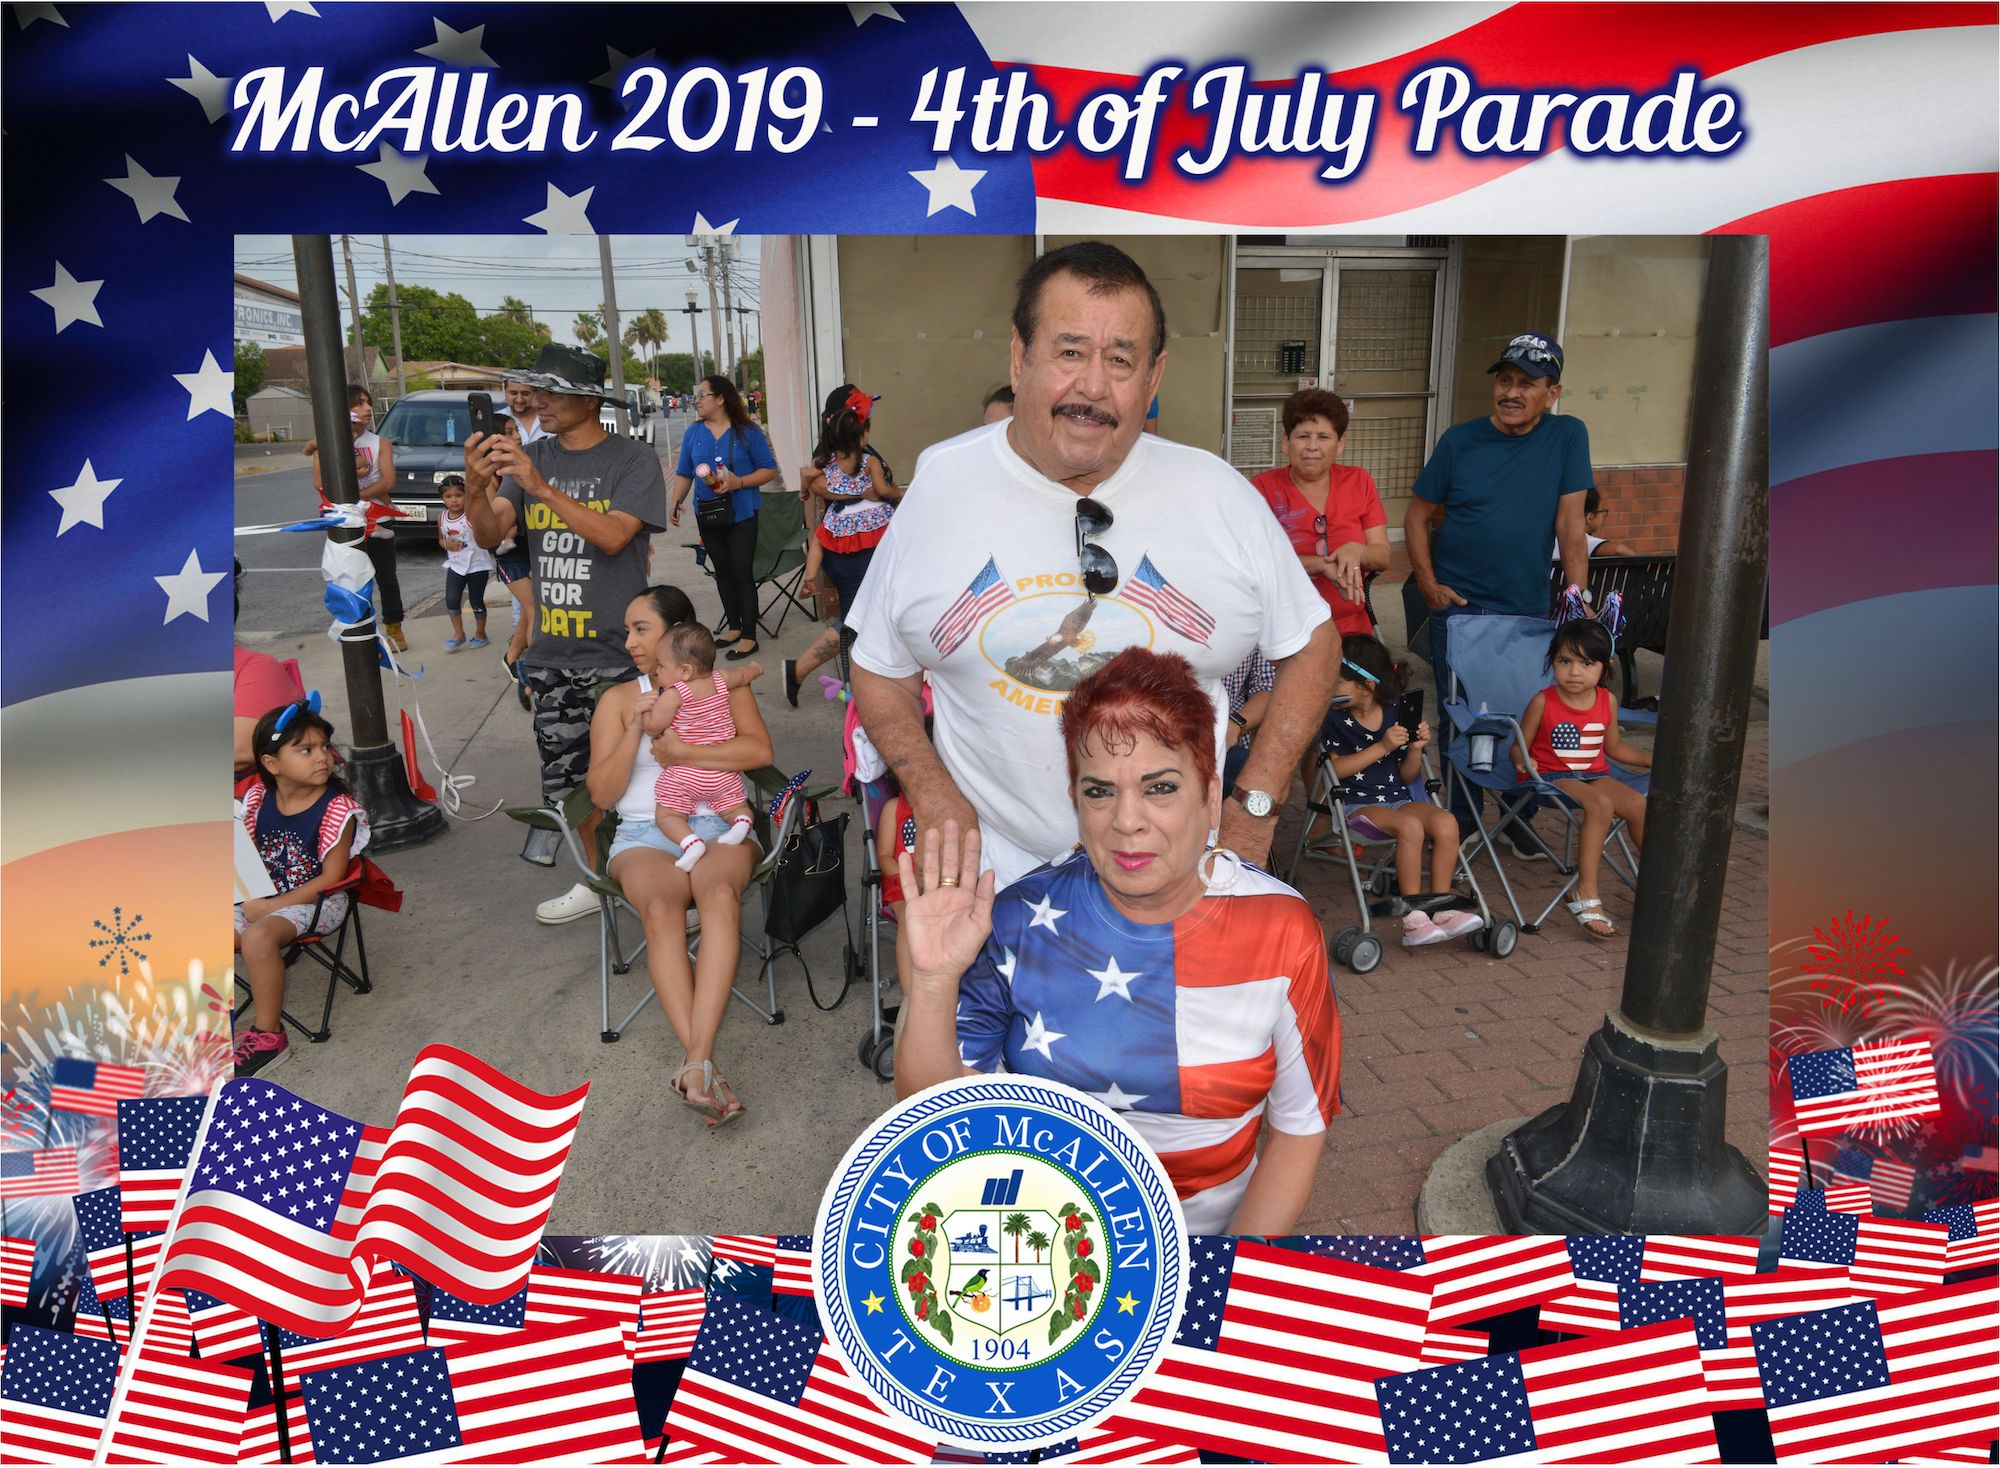 McAllen 4th of July Parade 2019 – Part 2